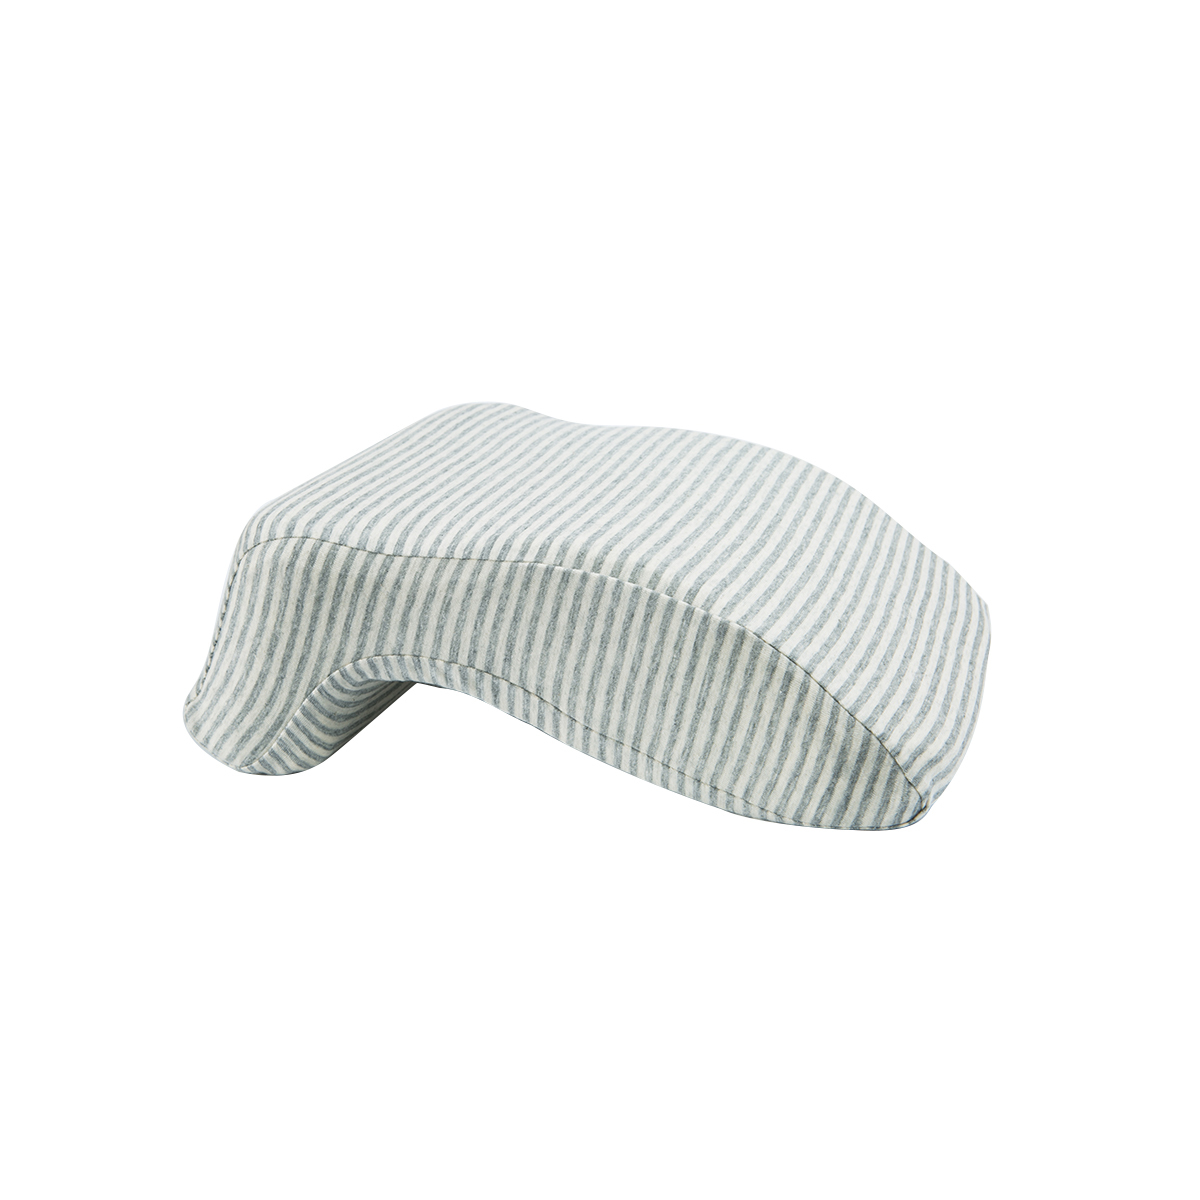 Nap Anywhere Memory Foam Pillow